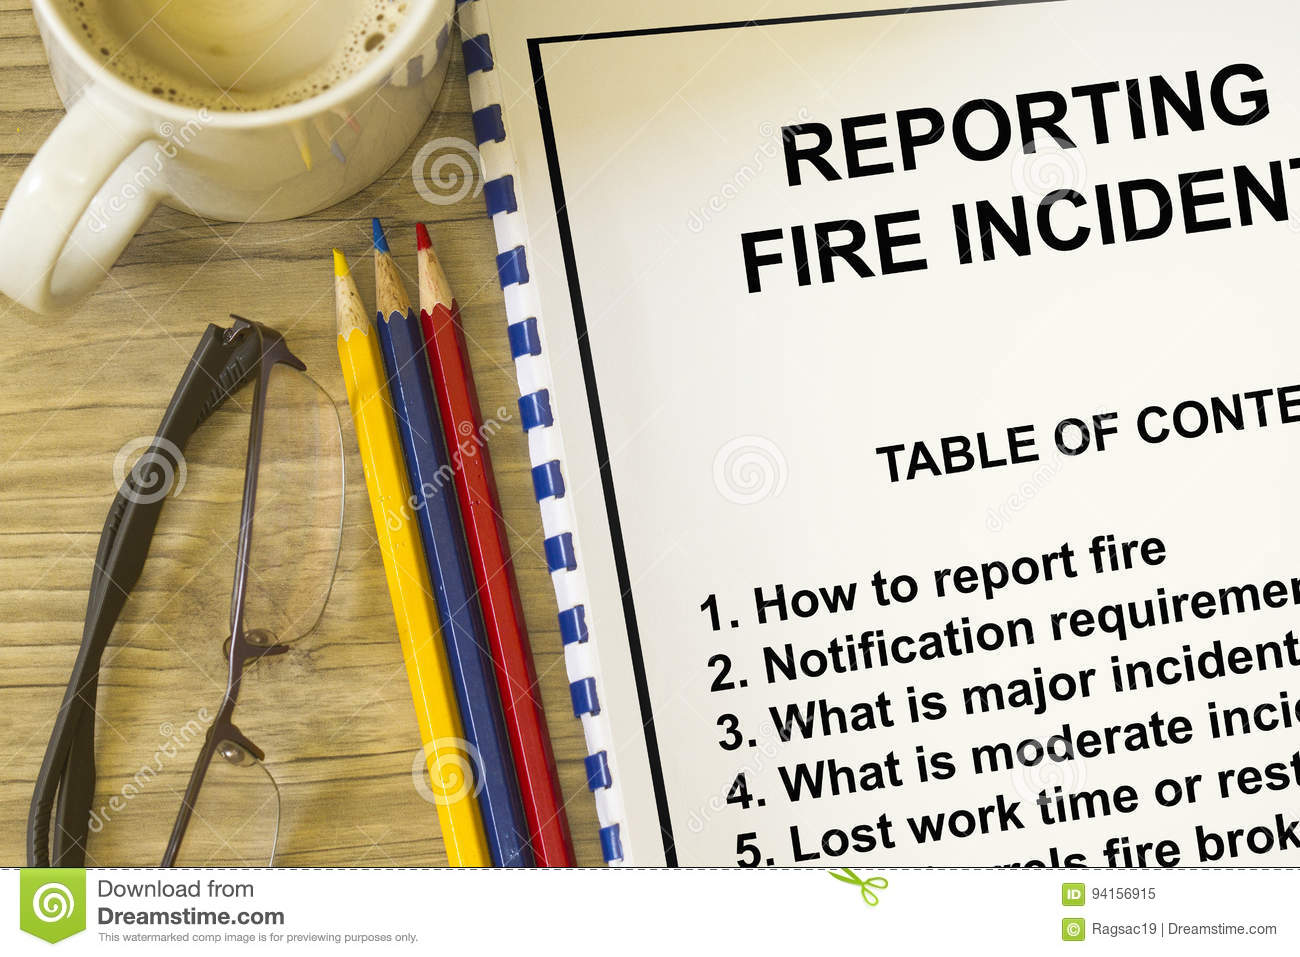 Fire incident reporting